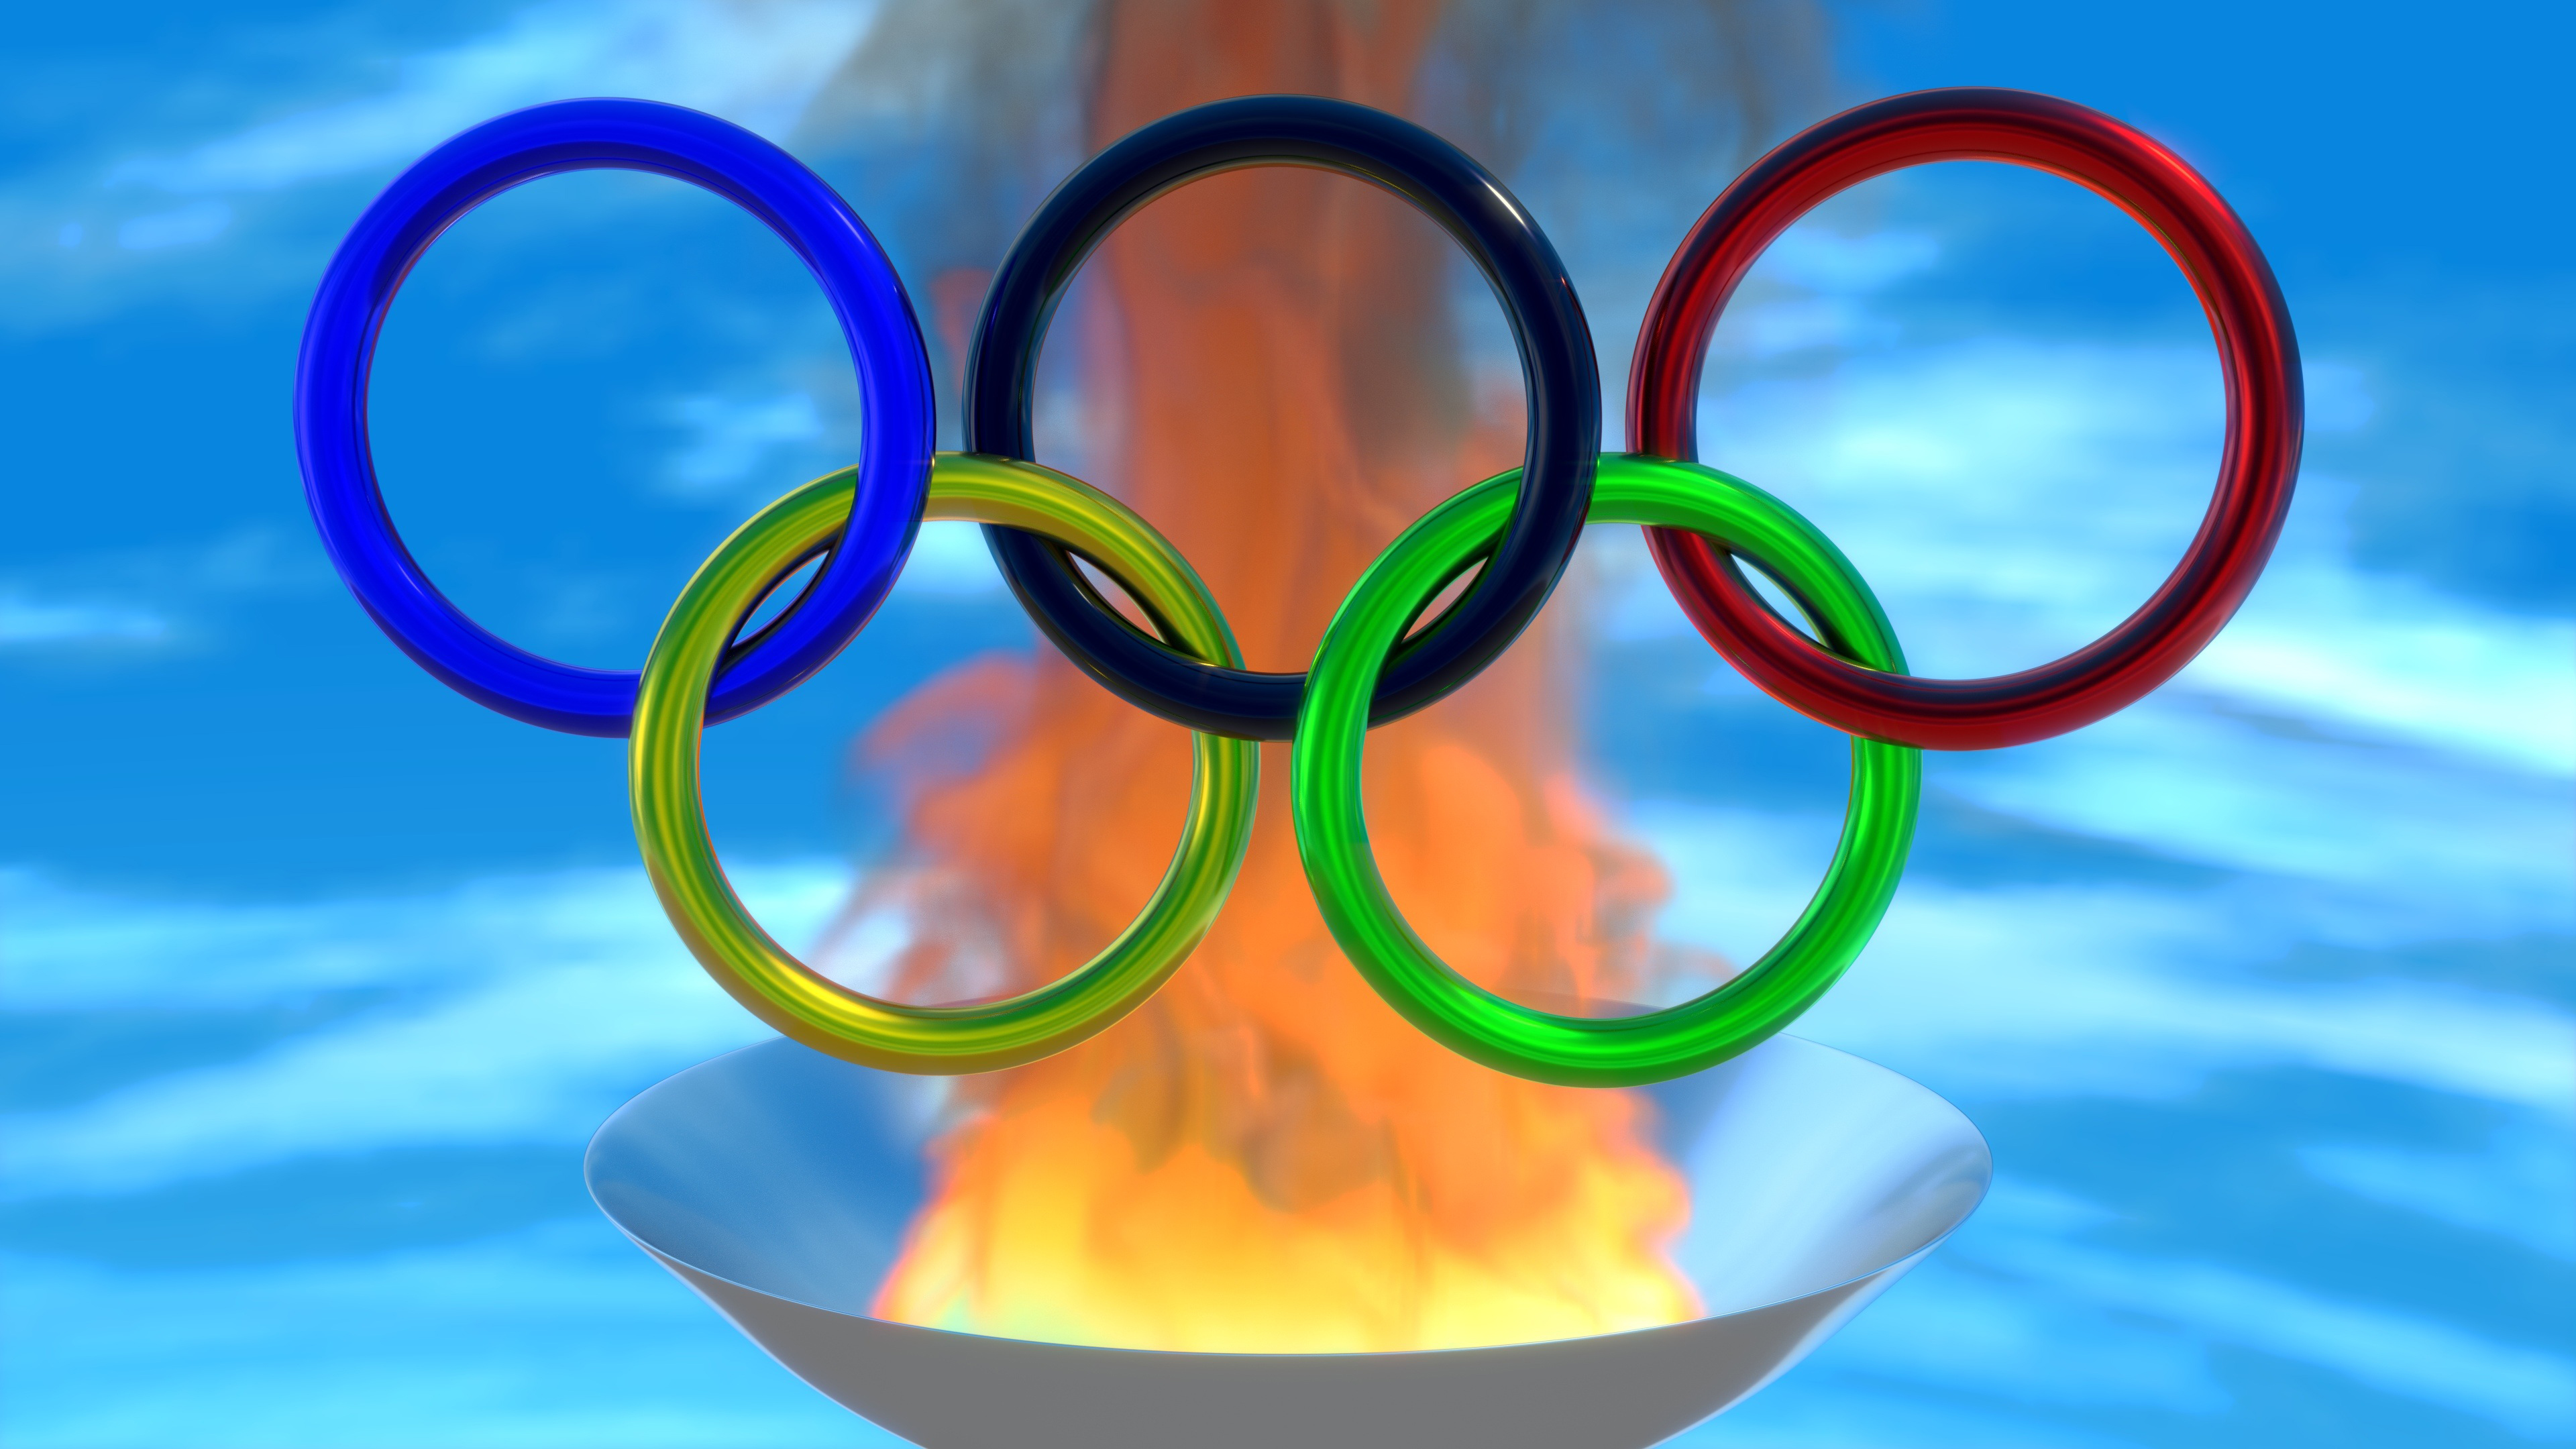 Olympiad ring, sport ,fire, smoke,